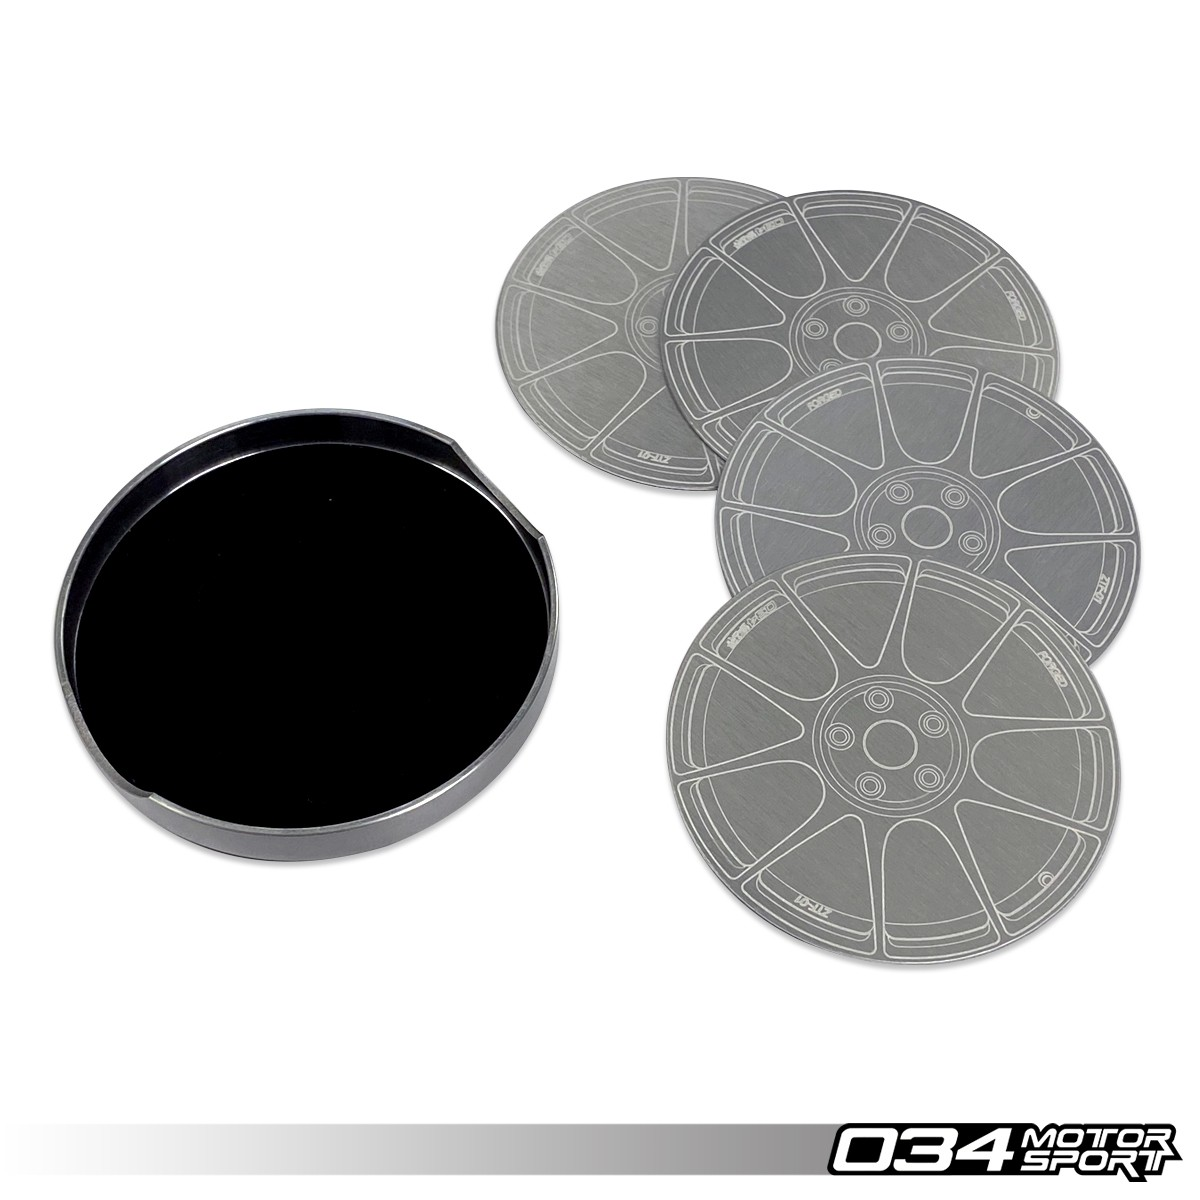 ZTF-01 Coaster Set 034-A05-0005